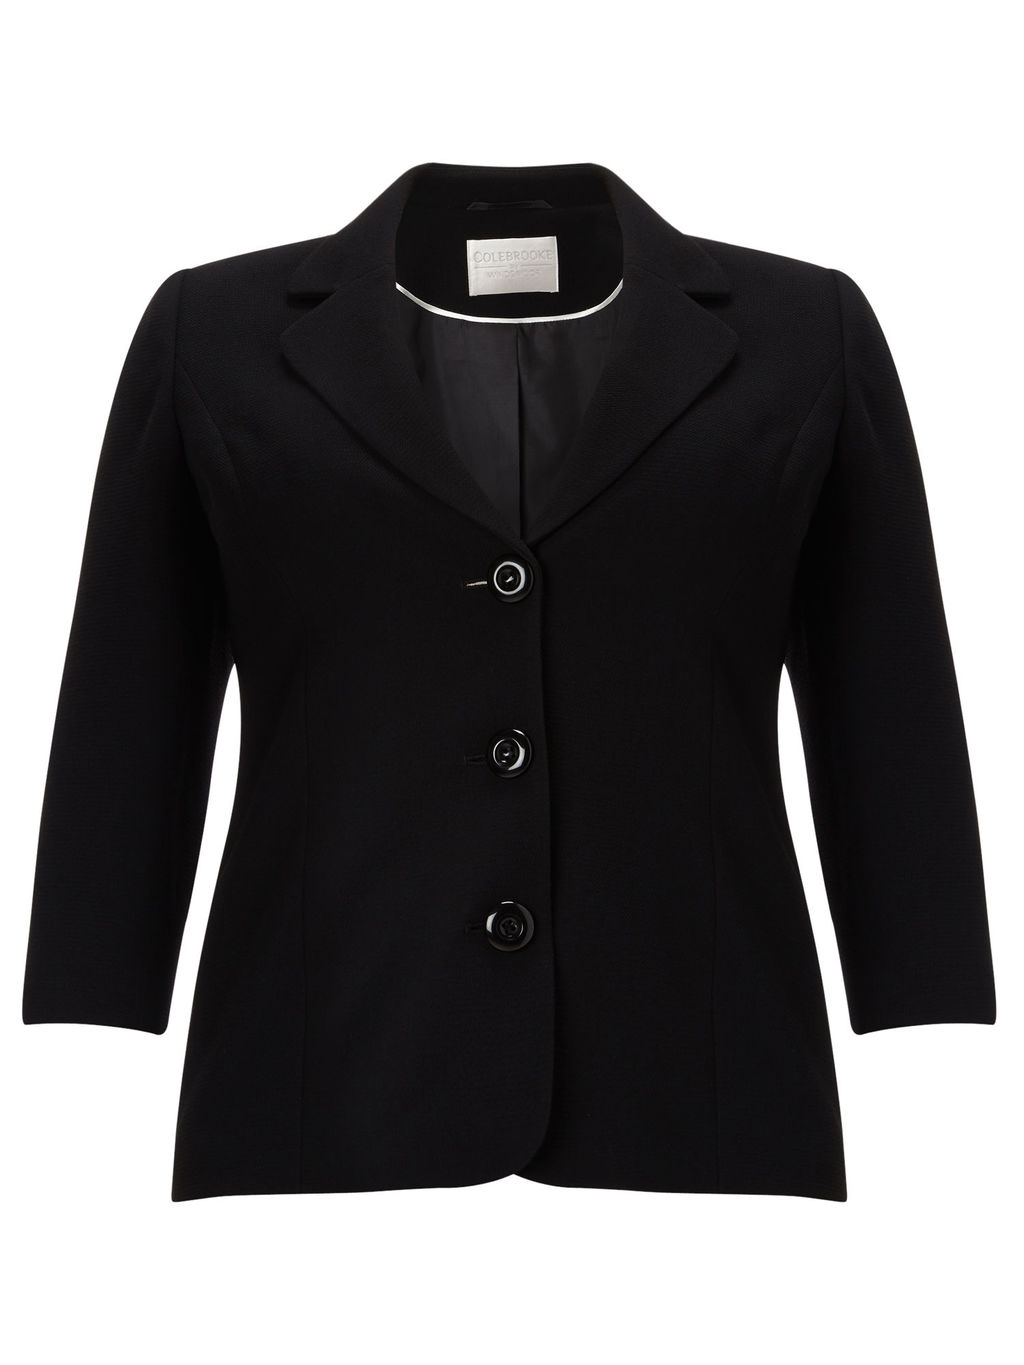 Textured Jacket, Black - pattern: plain; style: single breasted blazer; fit: slim fit; collar: standard lapel/rever collar; predominant colour: black; occasions: work; length: standard; fibres: polyester/polyamide - 100%; sleeve length: 3/4 length; sleeve style: standard; collar break: medium; pattern type: fabric; texture group: woven light midweight; season: a/w 2015; wardrobe: investment